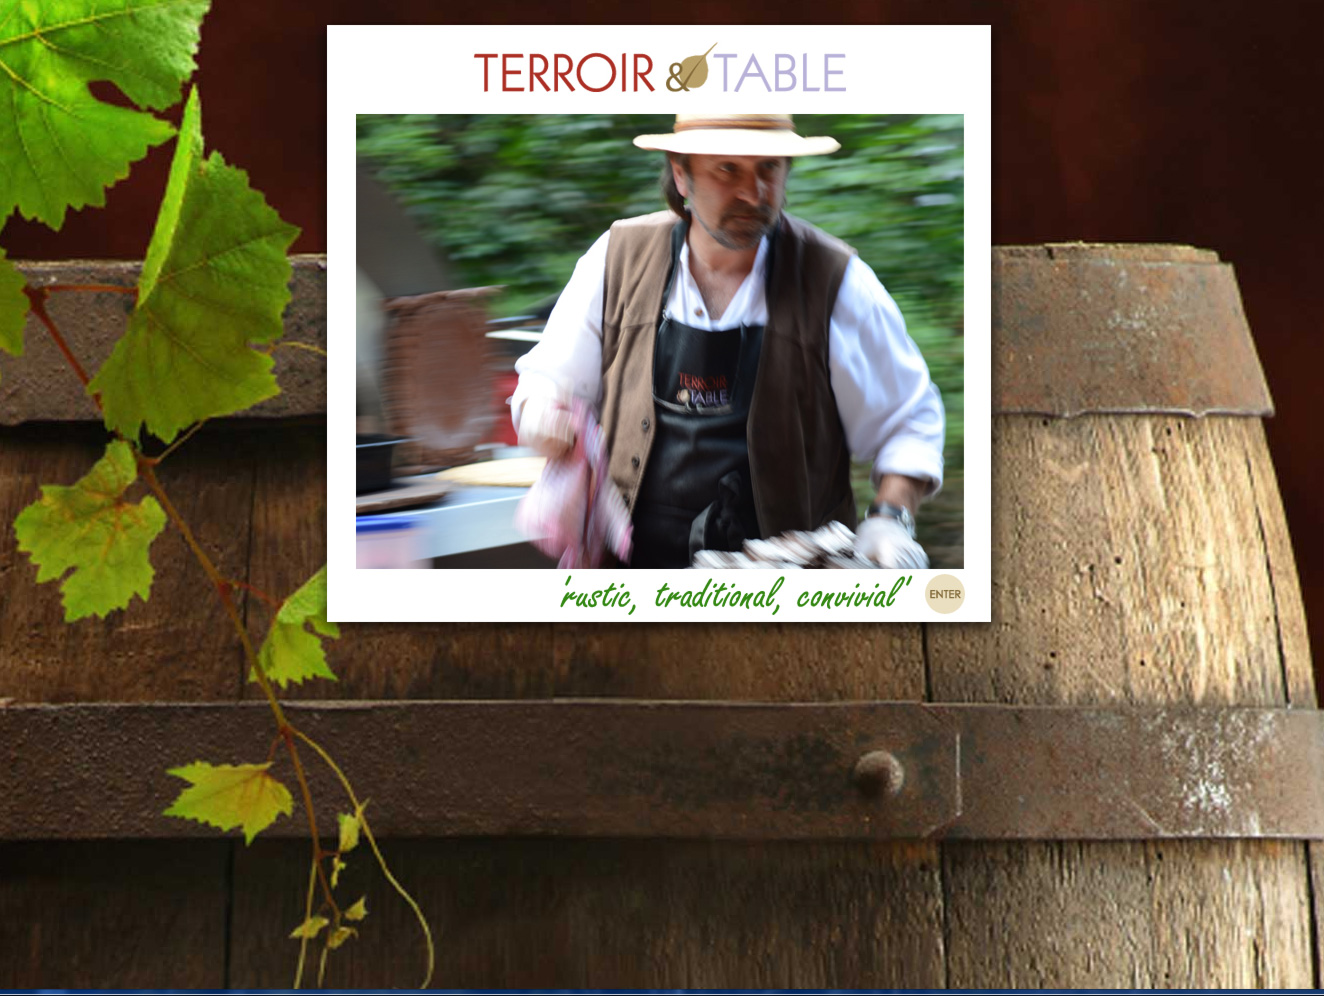 Terroir & Table